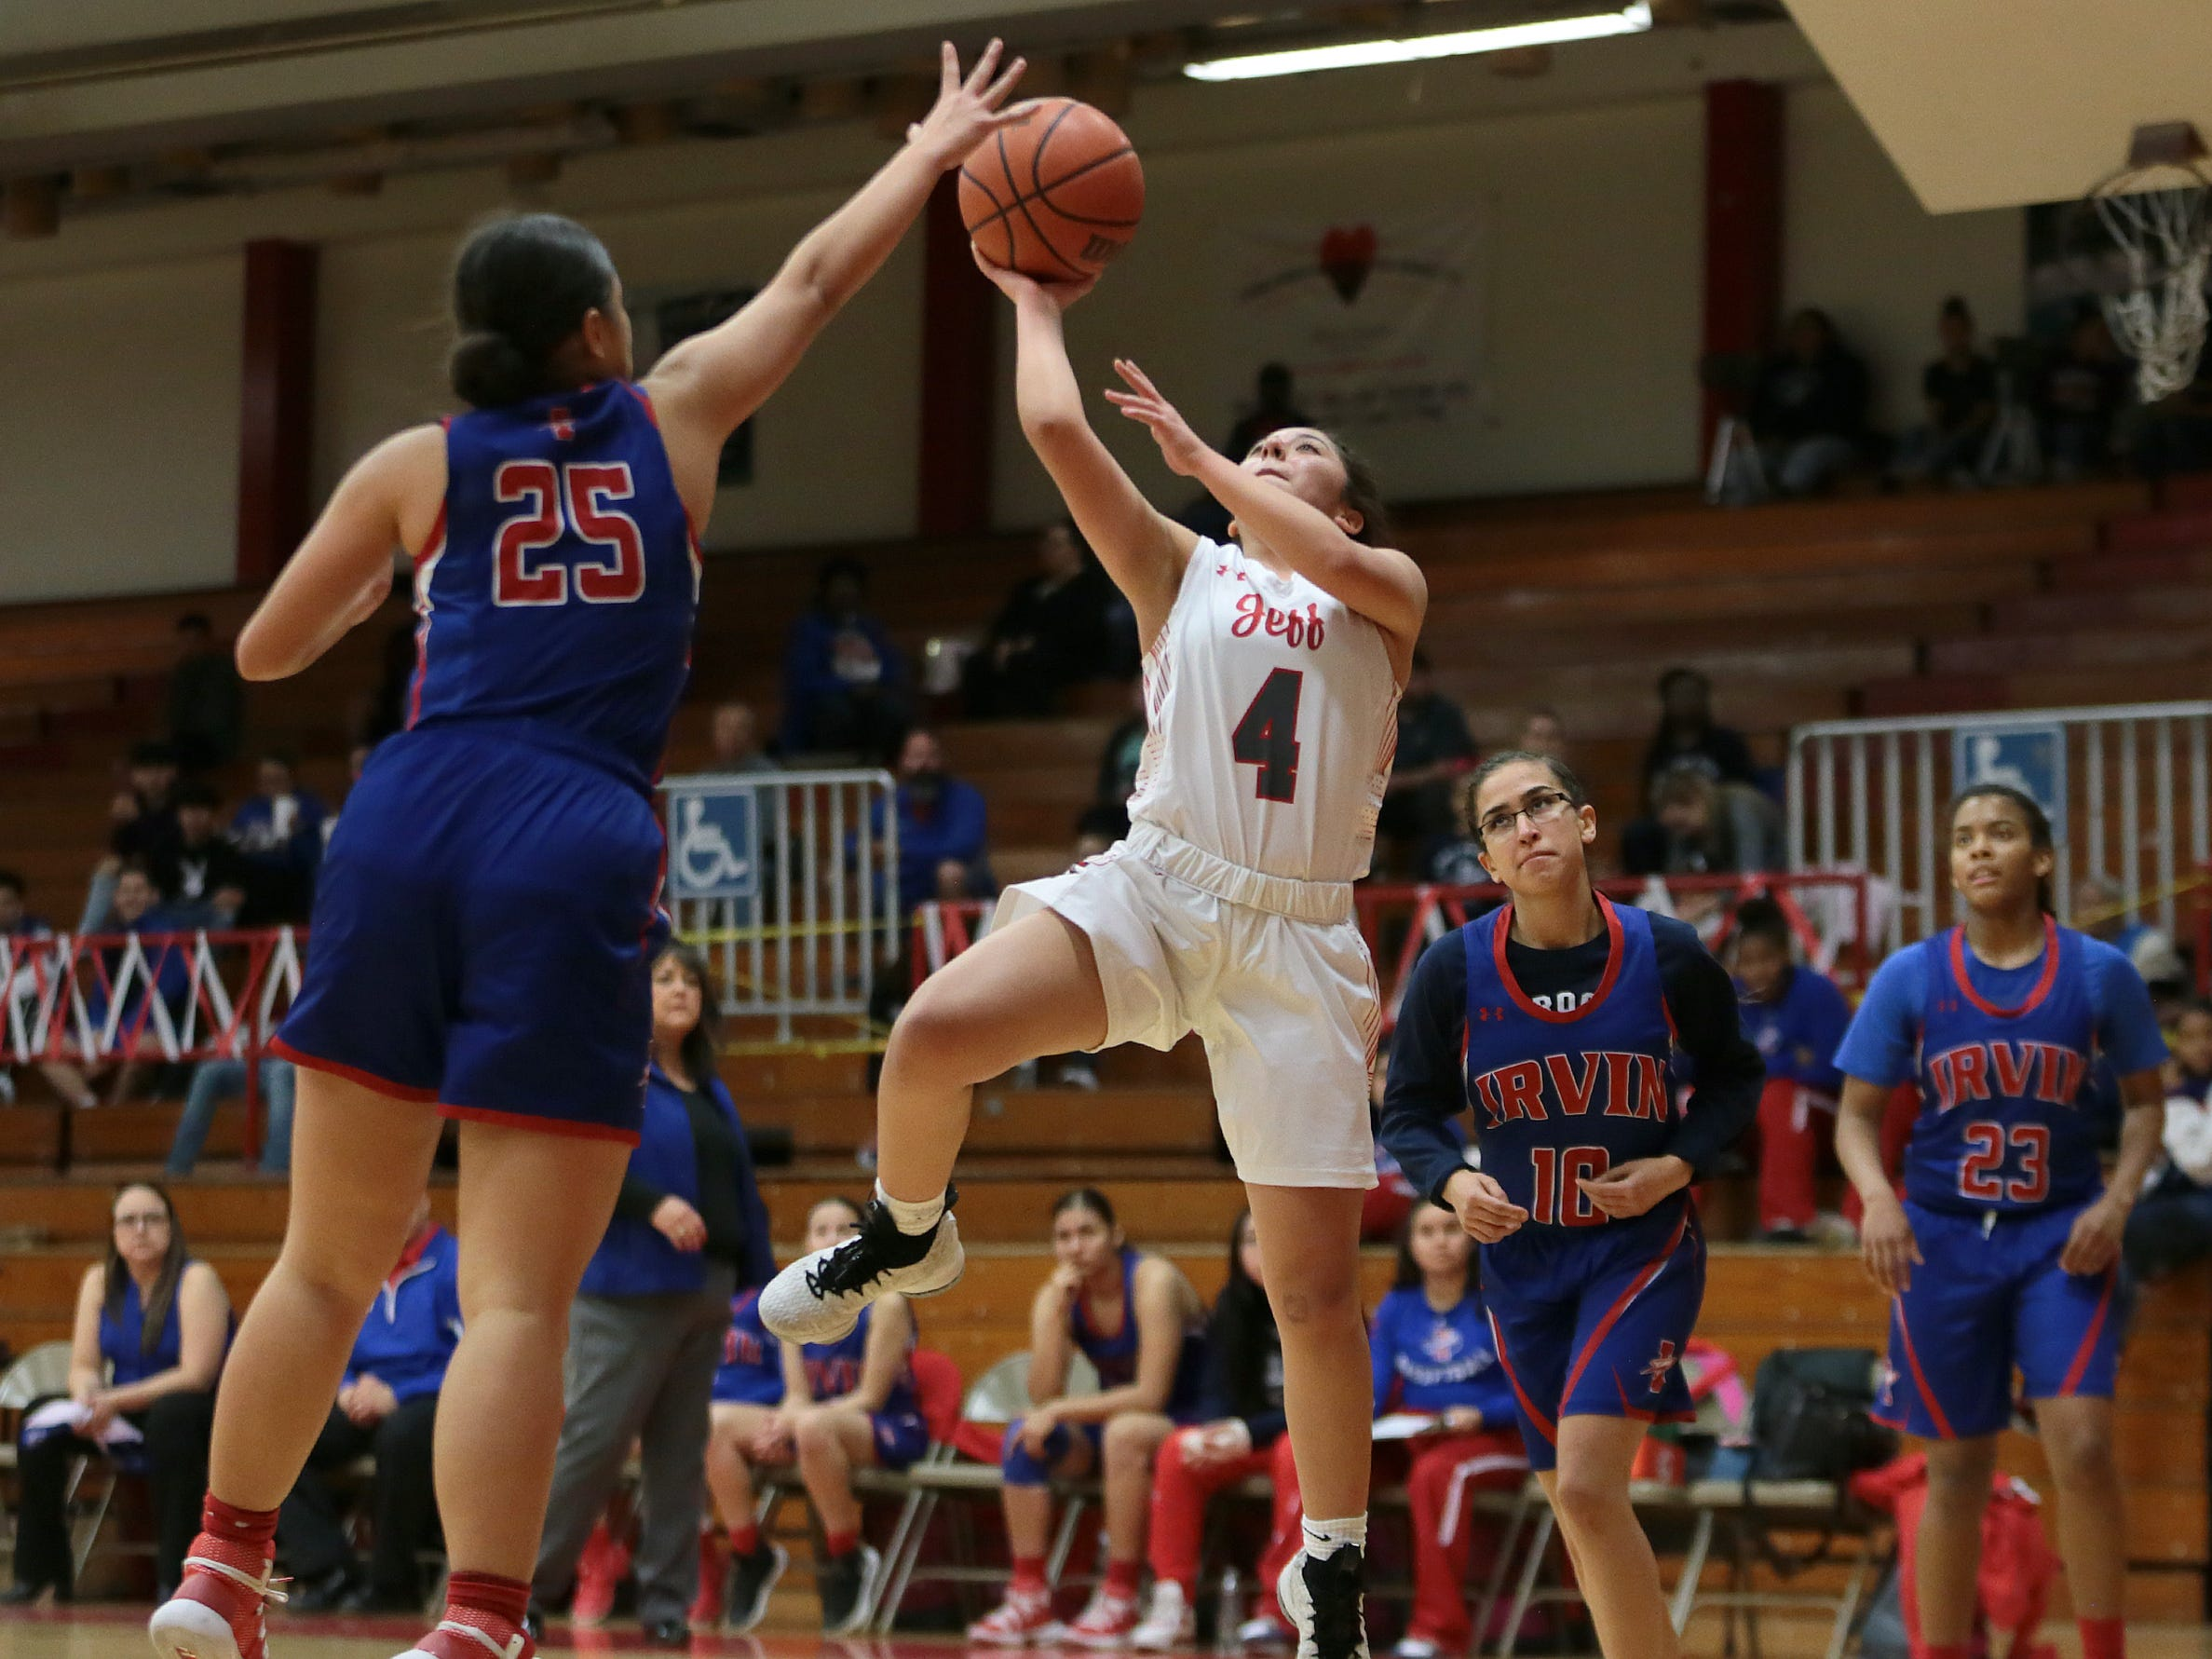 Jefferson Girl's Basketball Takes on Irvin